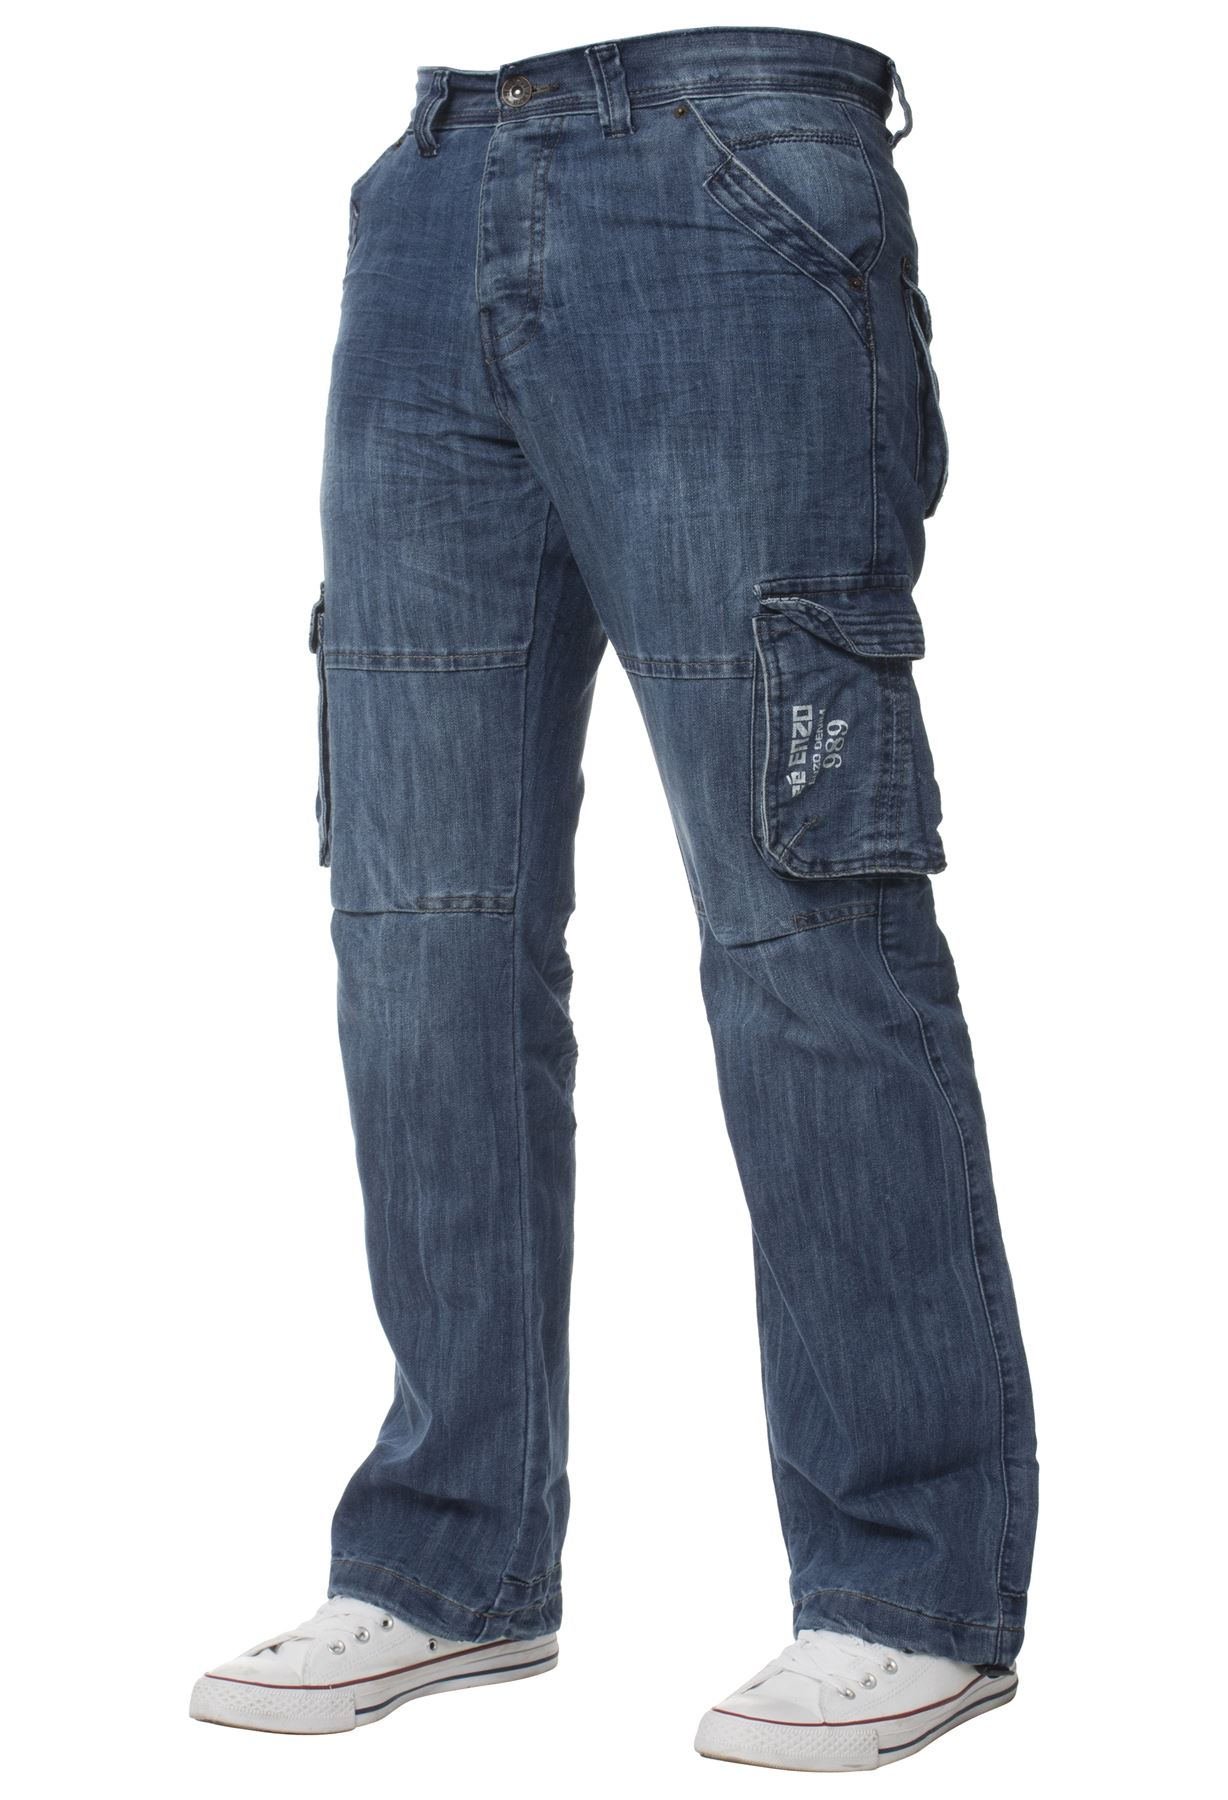 Enzo-Mens-Cargo-Combat-Trousers-Jeans-Work-Casual-Denim-Pants-Big-Tall-All-Waist thumbnail 8